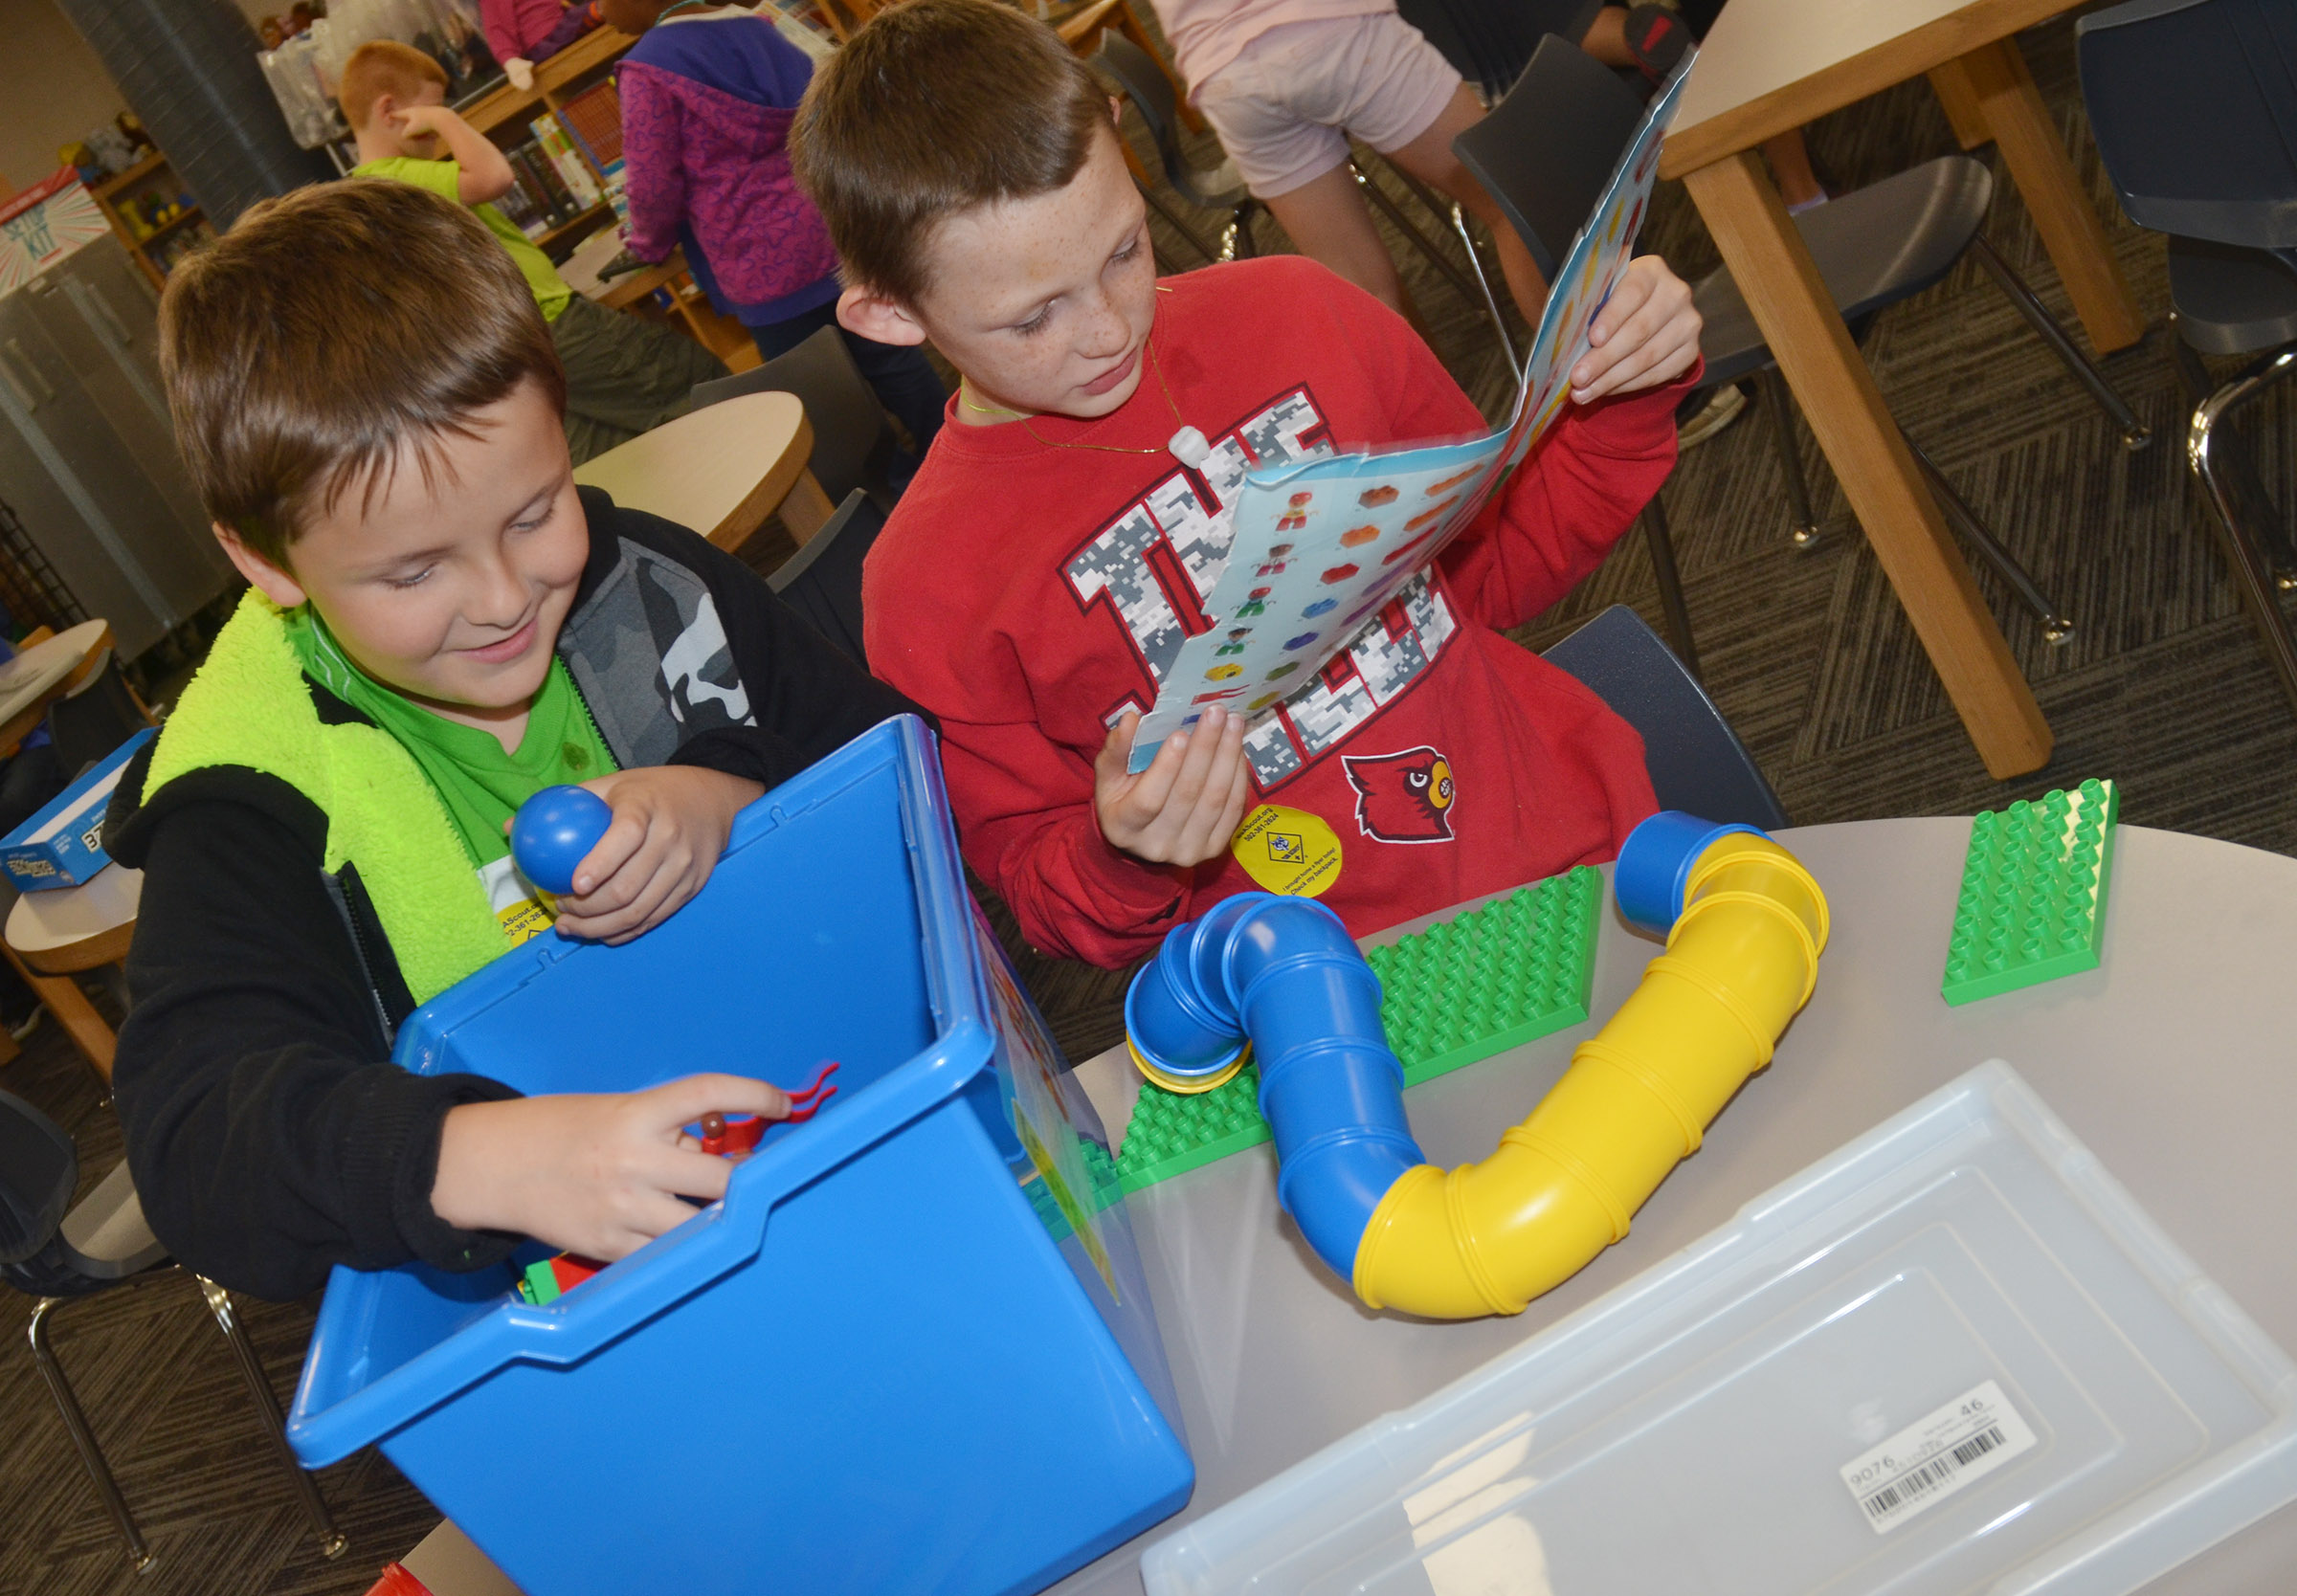 CES fourth-graders Daniel Shively, at left, and Cohutta Giles build together.